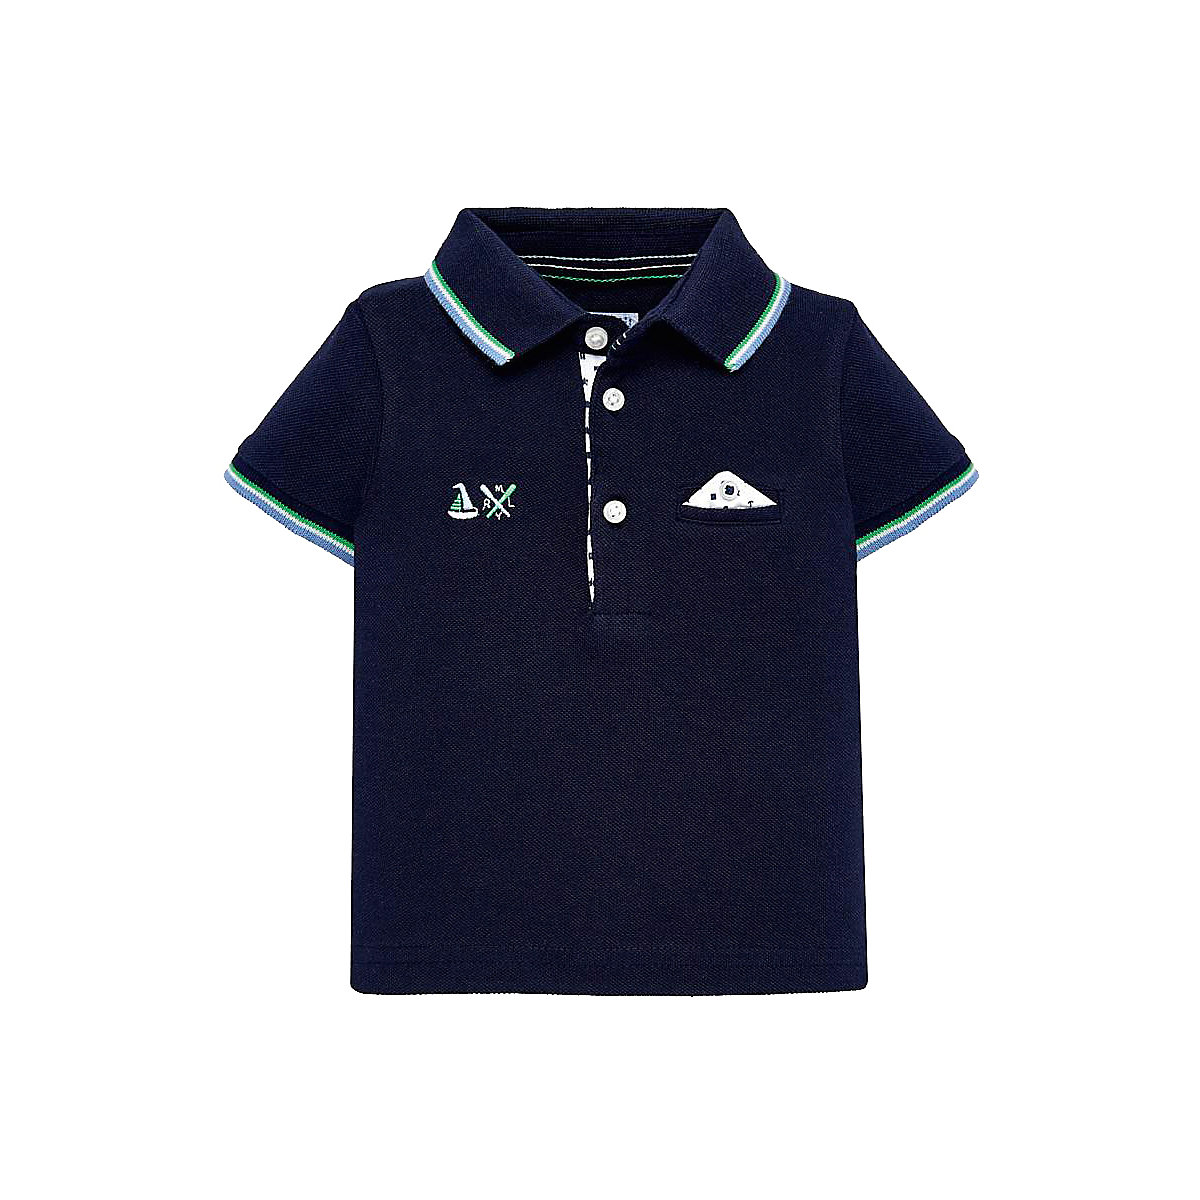 MAYORAL Polo Shirts 10687148 children clothing t-shirt shirt the print for boys 1958 the sartorialist pубашка